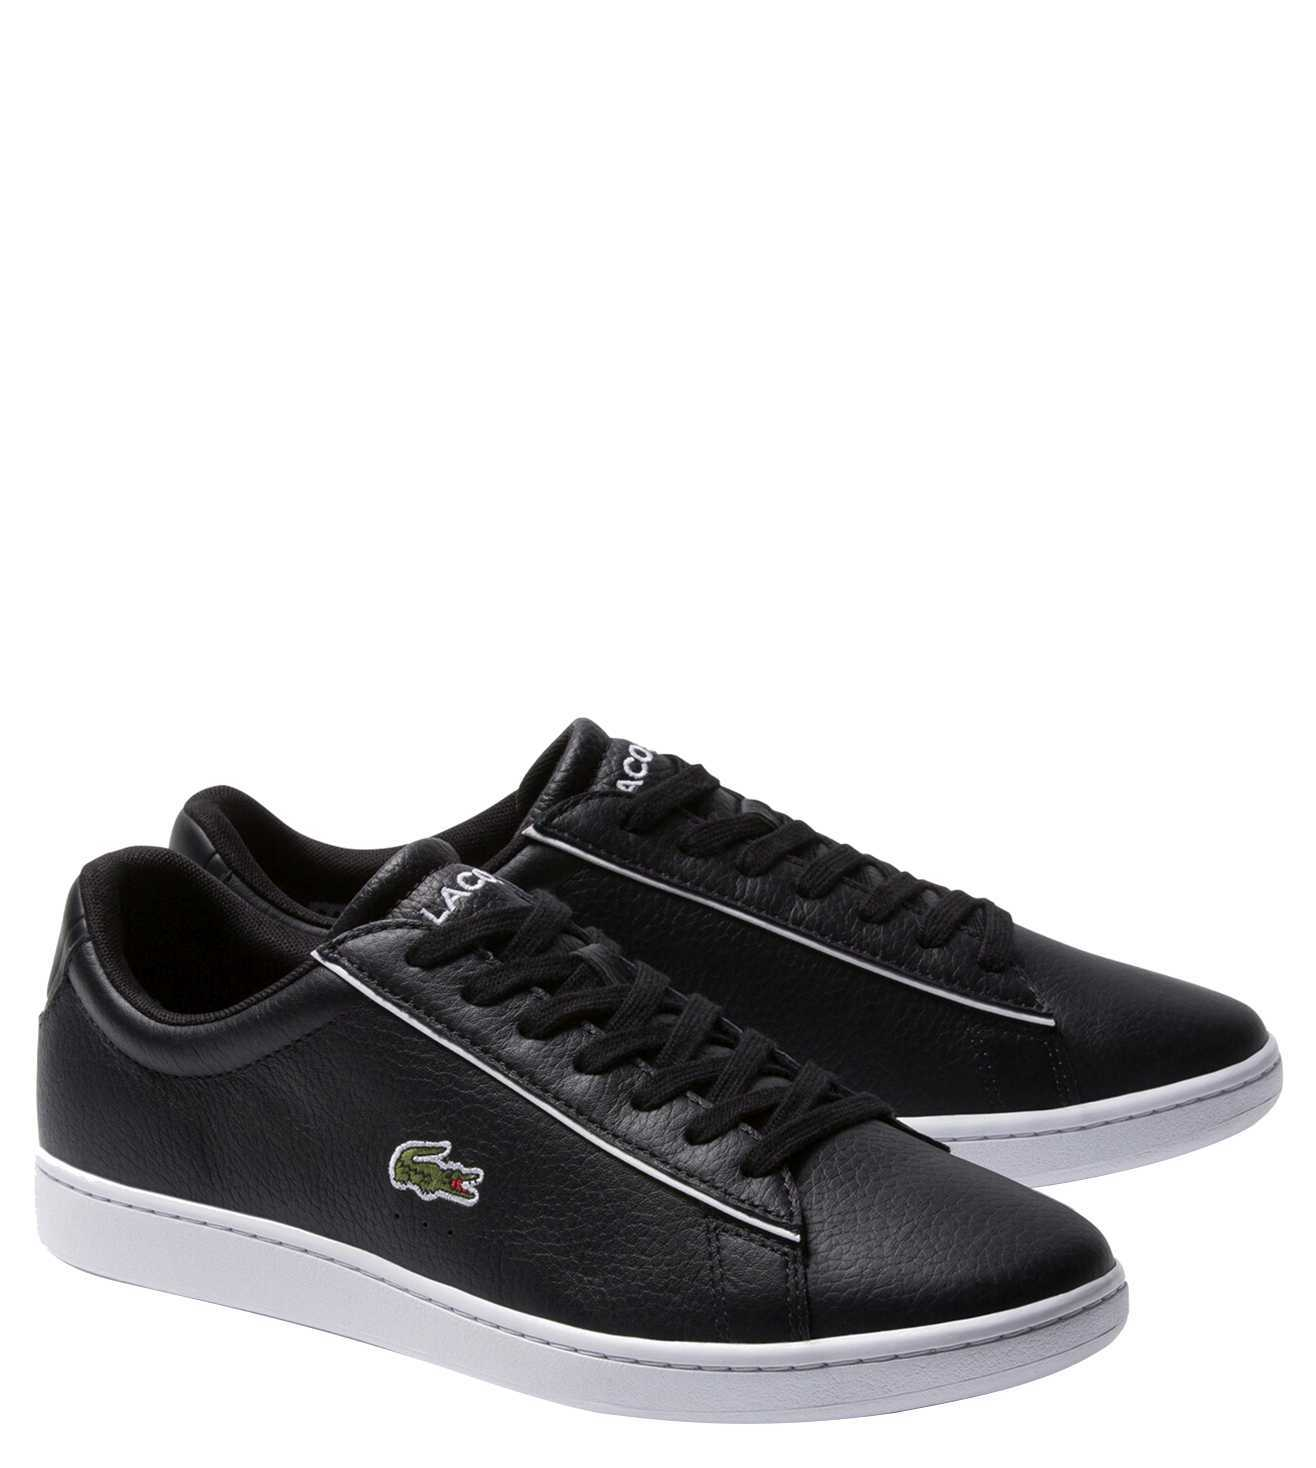 Buy Lacoste Black Carnaby Evo Tumbled